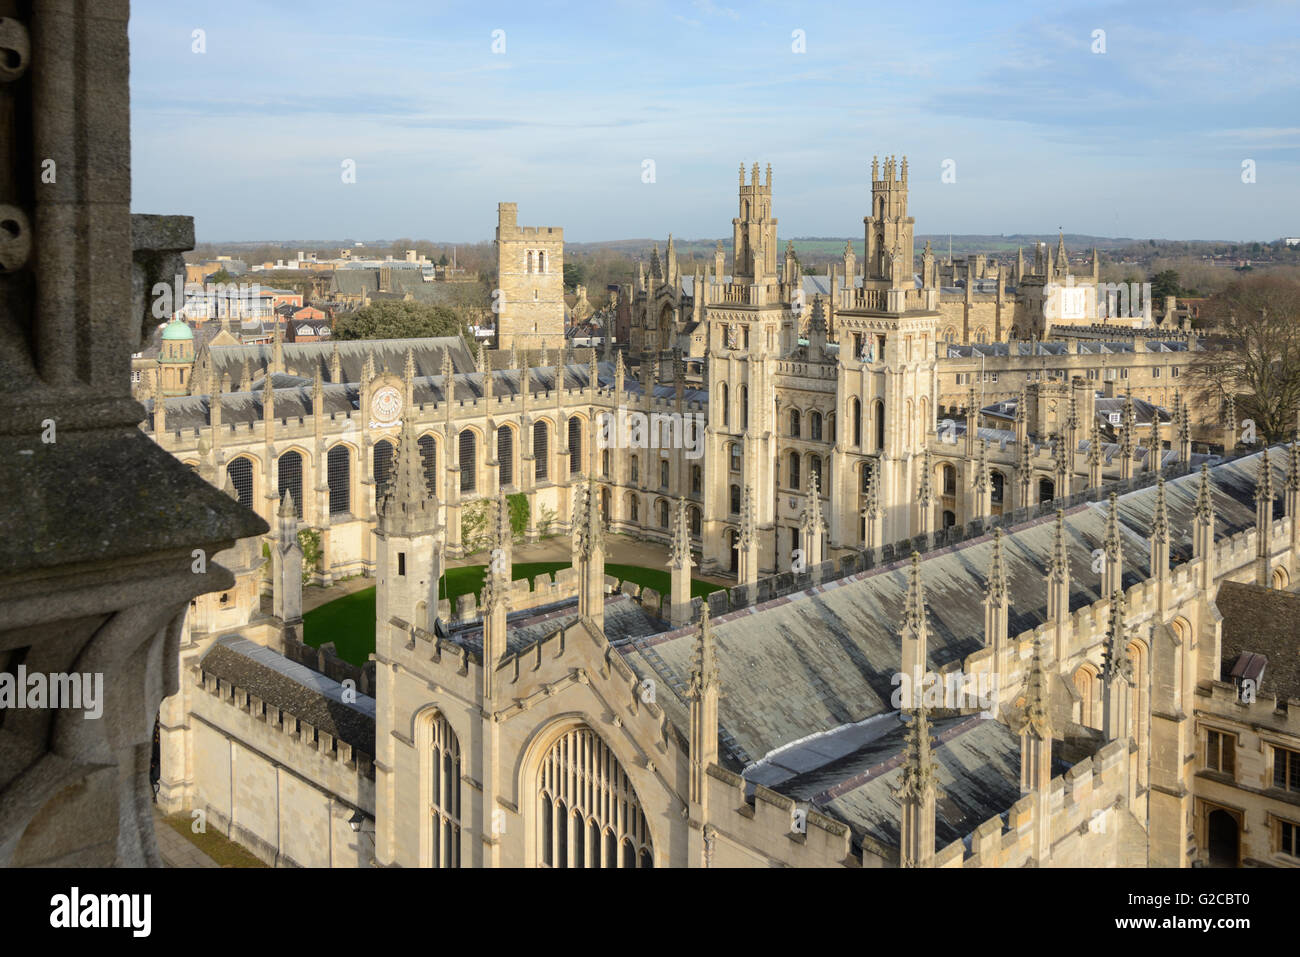 Spires and Rooftops of All Souls College Oxford University England - Stock Image